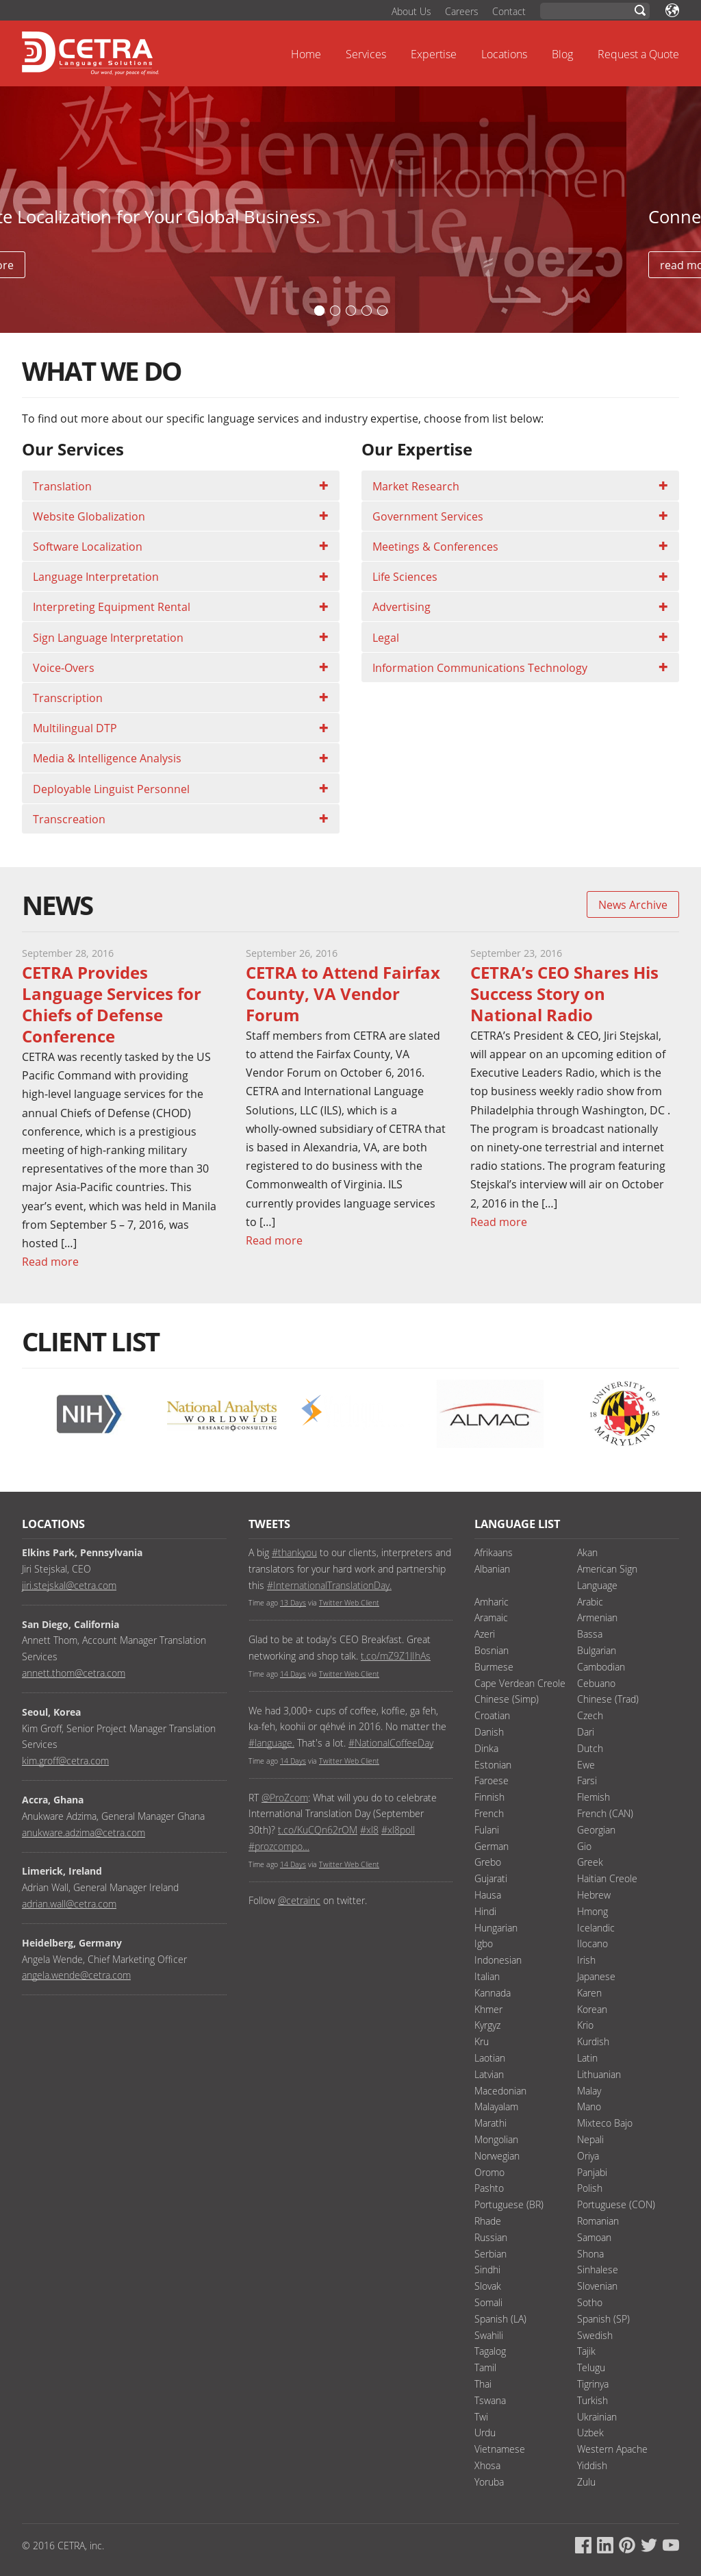 CETRA Competitors, Revenue and Employees - Owler Company Profile